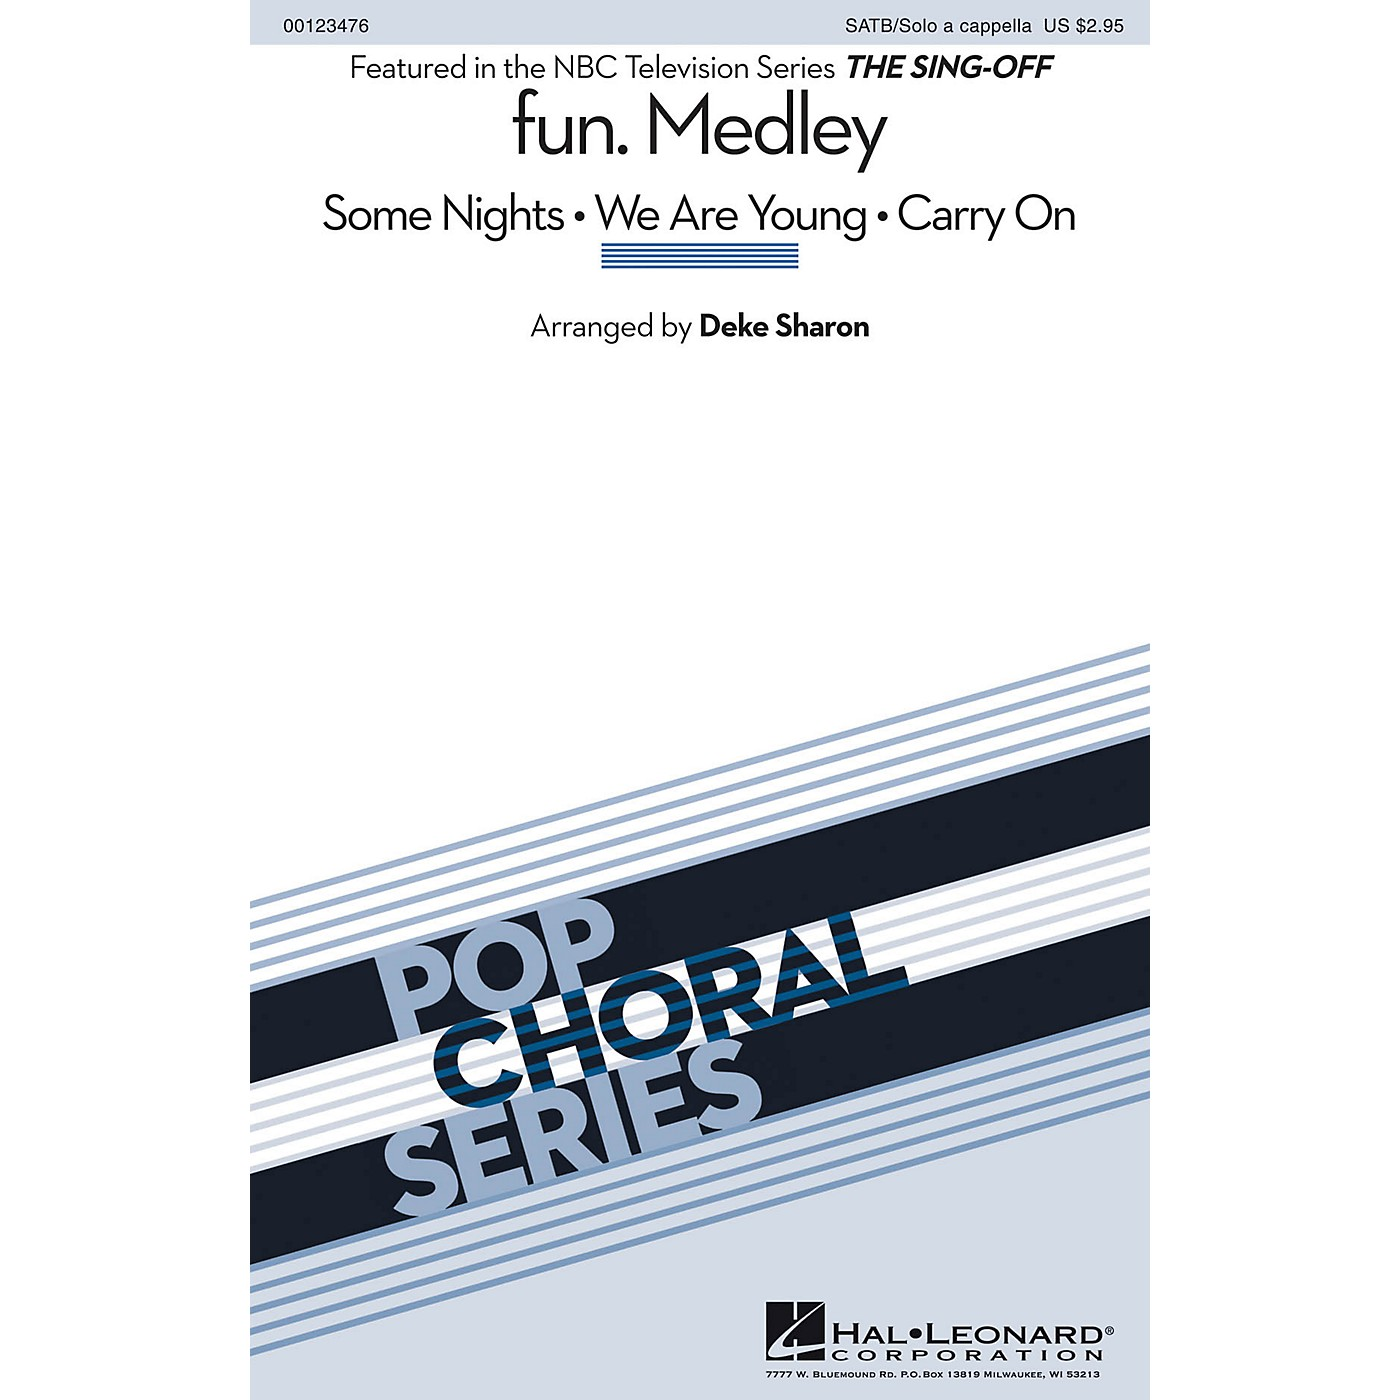 Hal Leonard fun. (Medley from The Sing-Off) SATB and Solo A Cappella by fun. arranged by Deke Sharon thumbnail